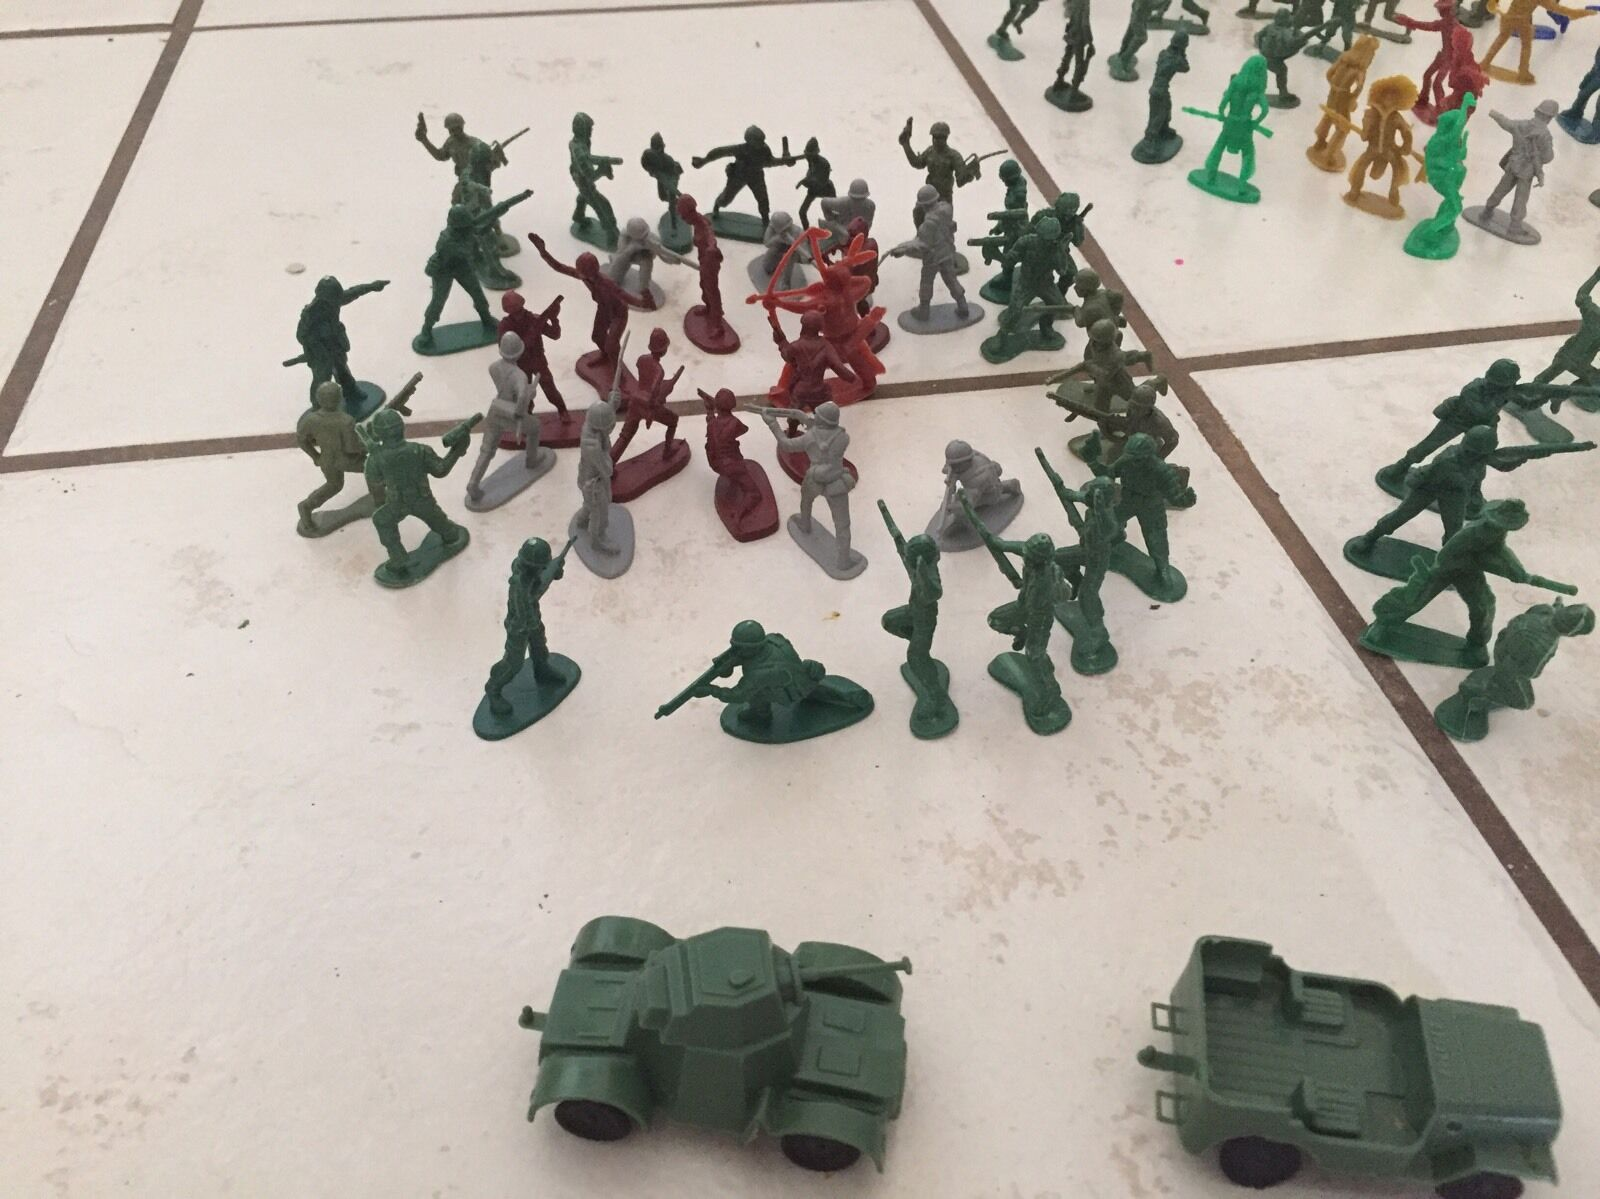 Little Army Soldiers Cowboys & Indians War Military Green Green Green Men Action Figure Lots d08745